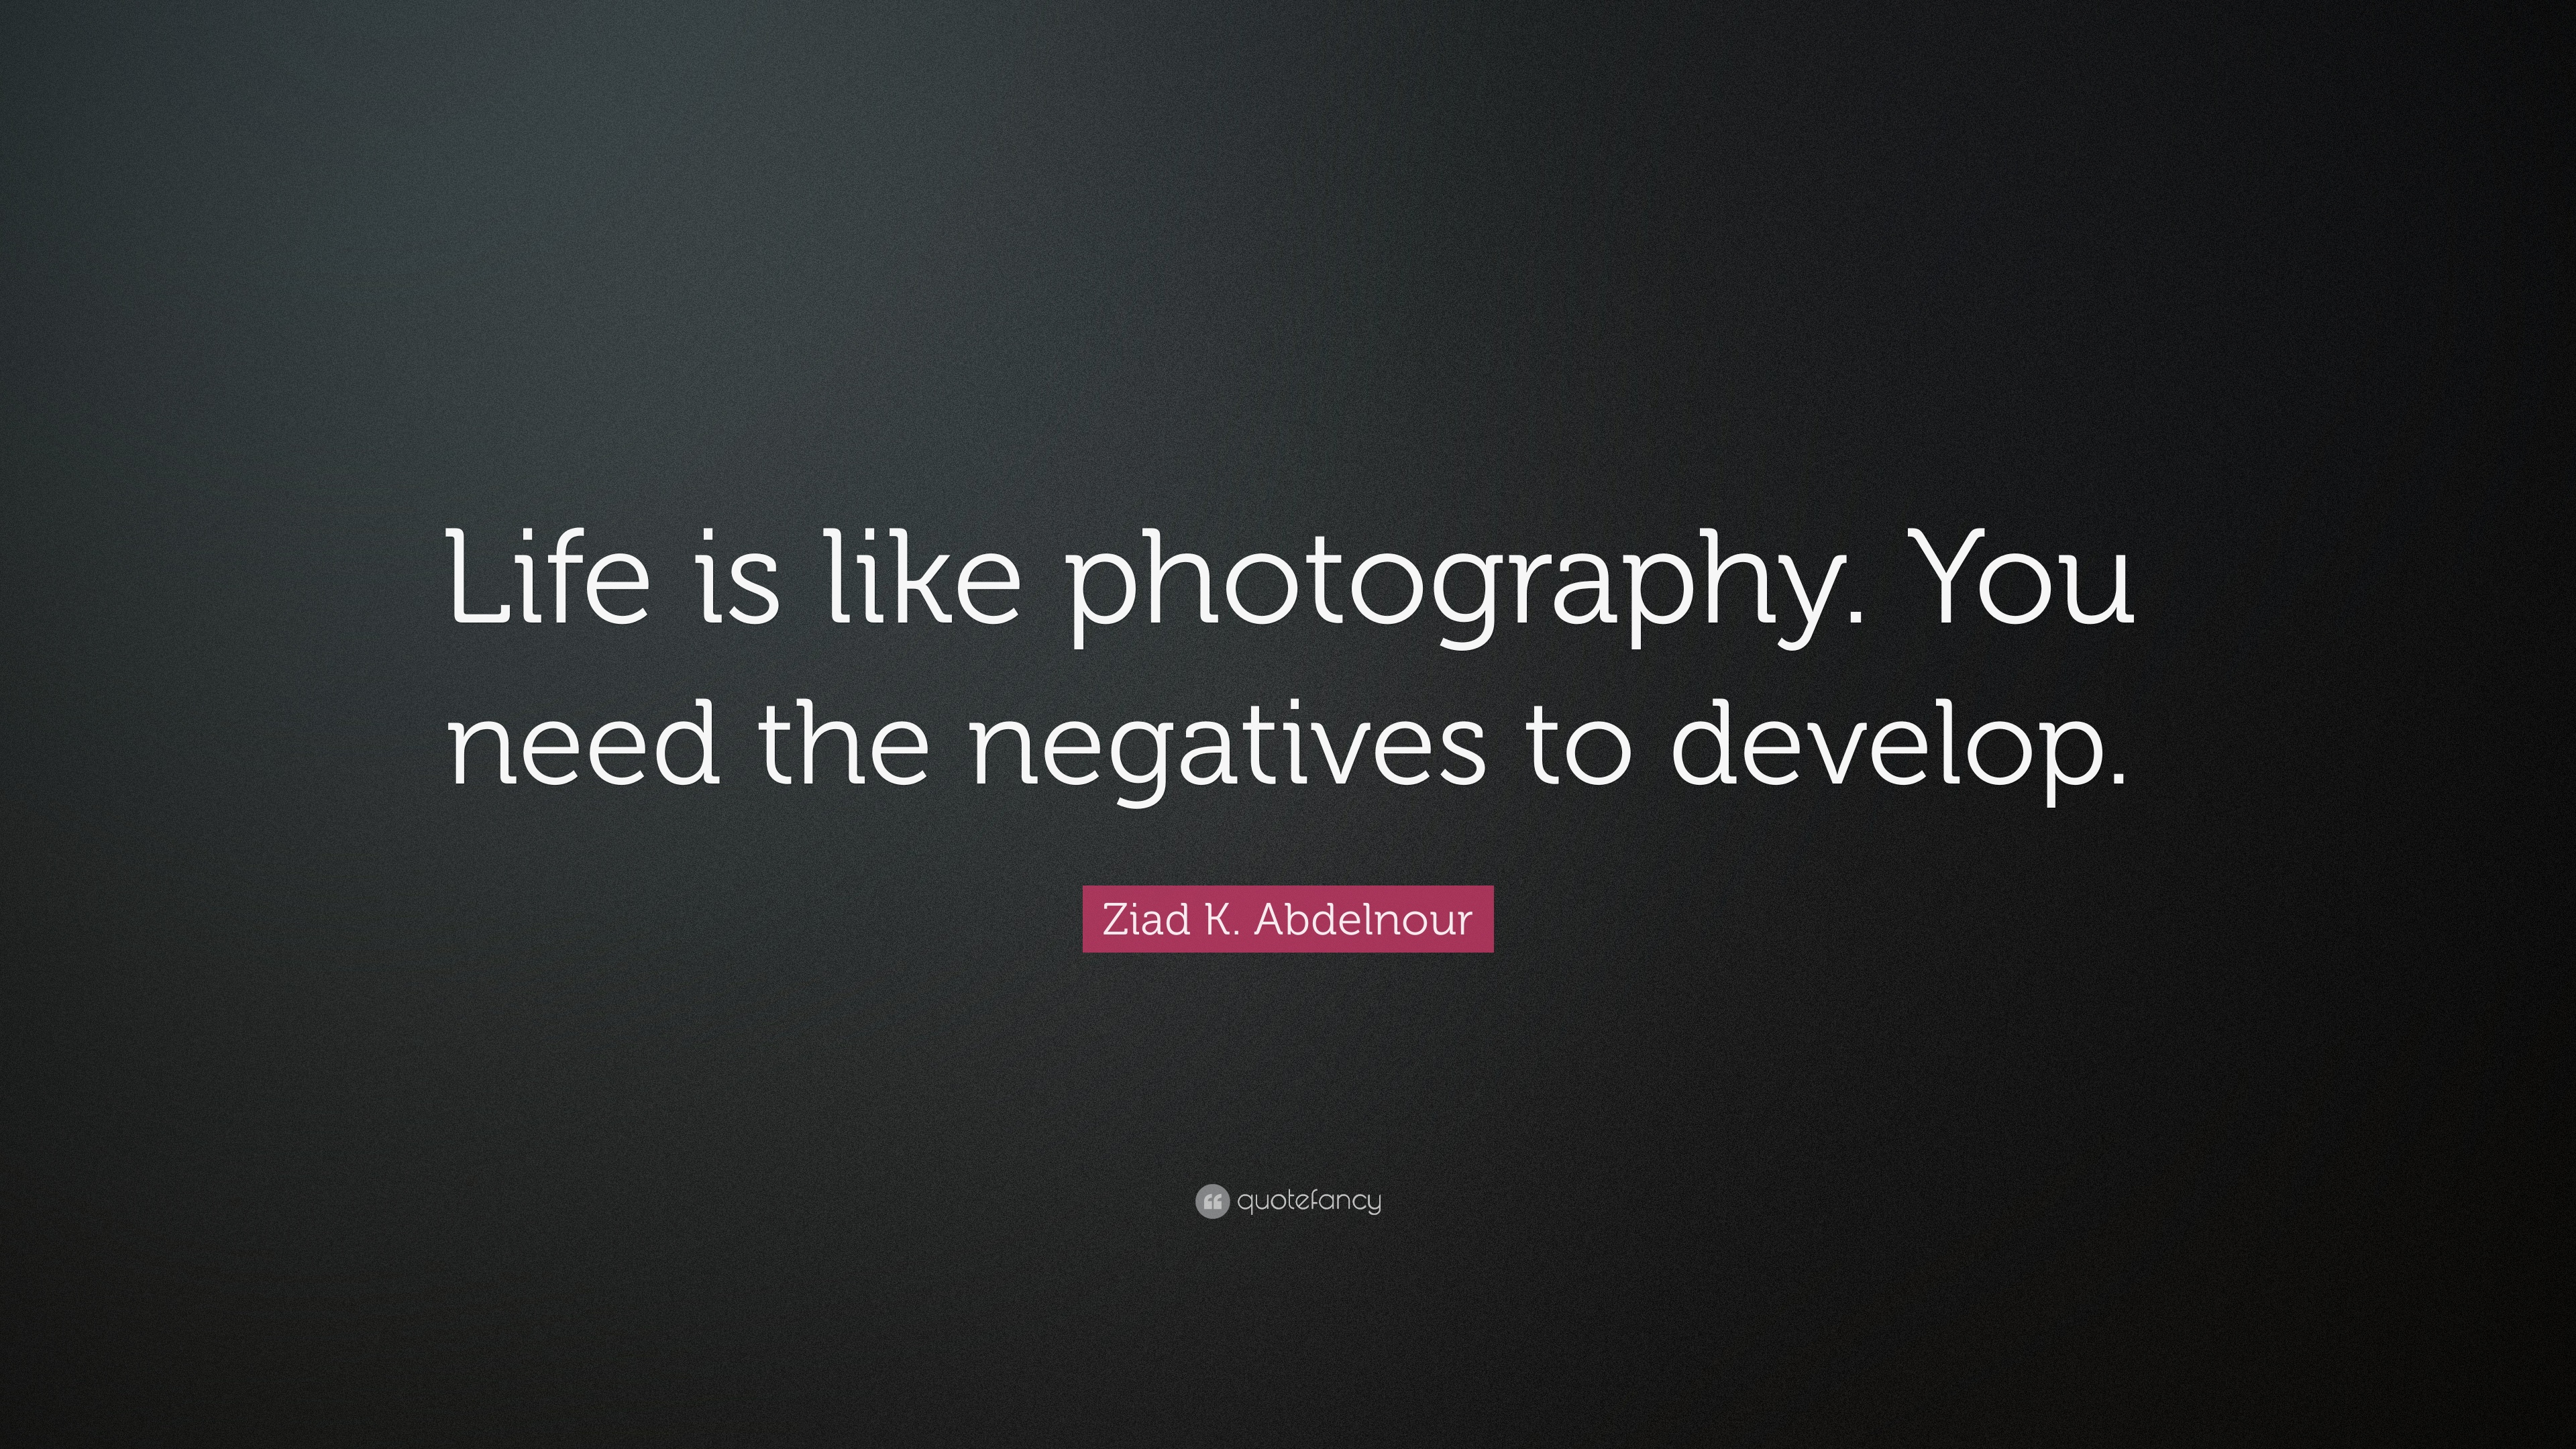 Vincent Van Gogh Quotes Wallpaper Ziad K Abdelnour Quote Life Is Like Photography You